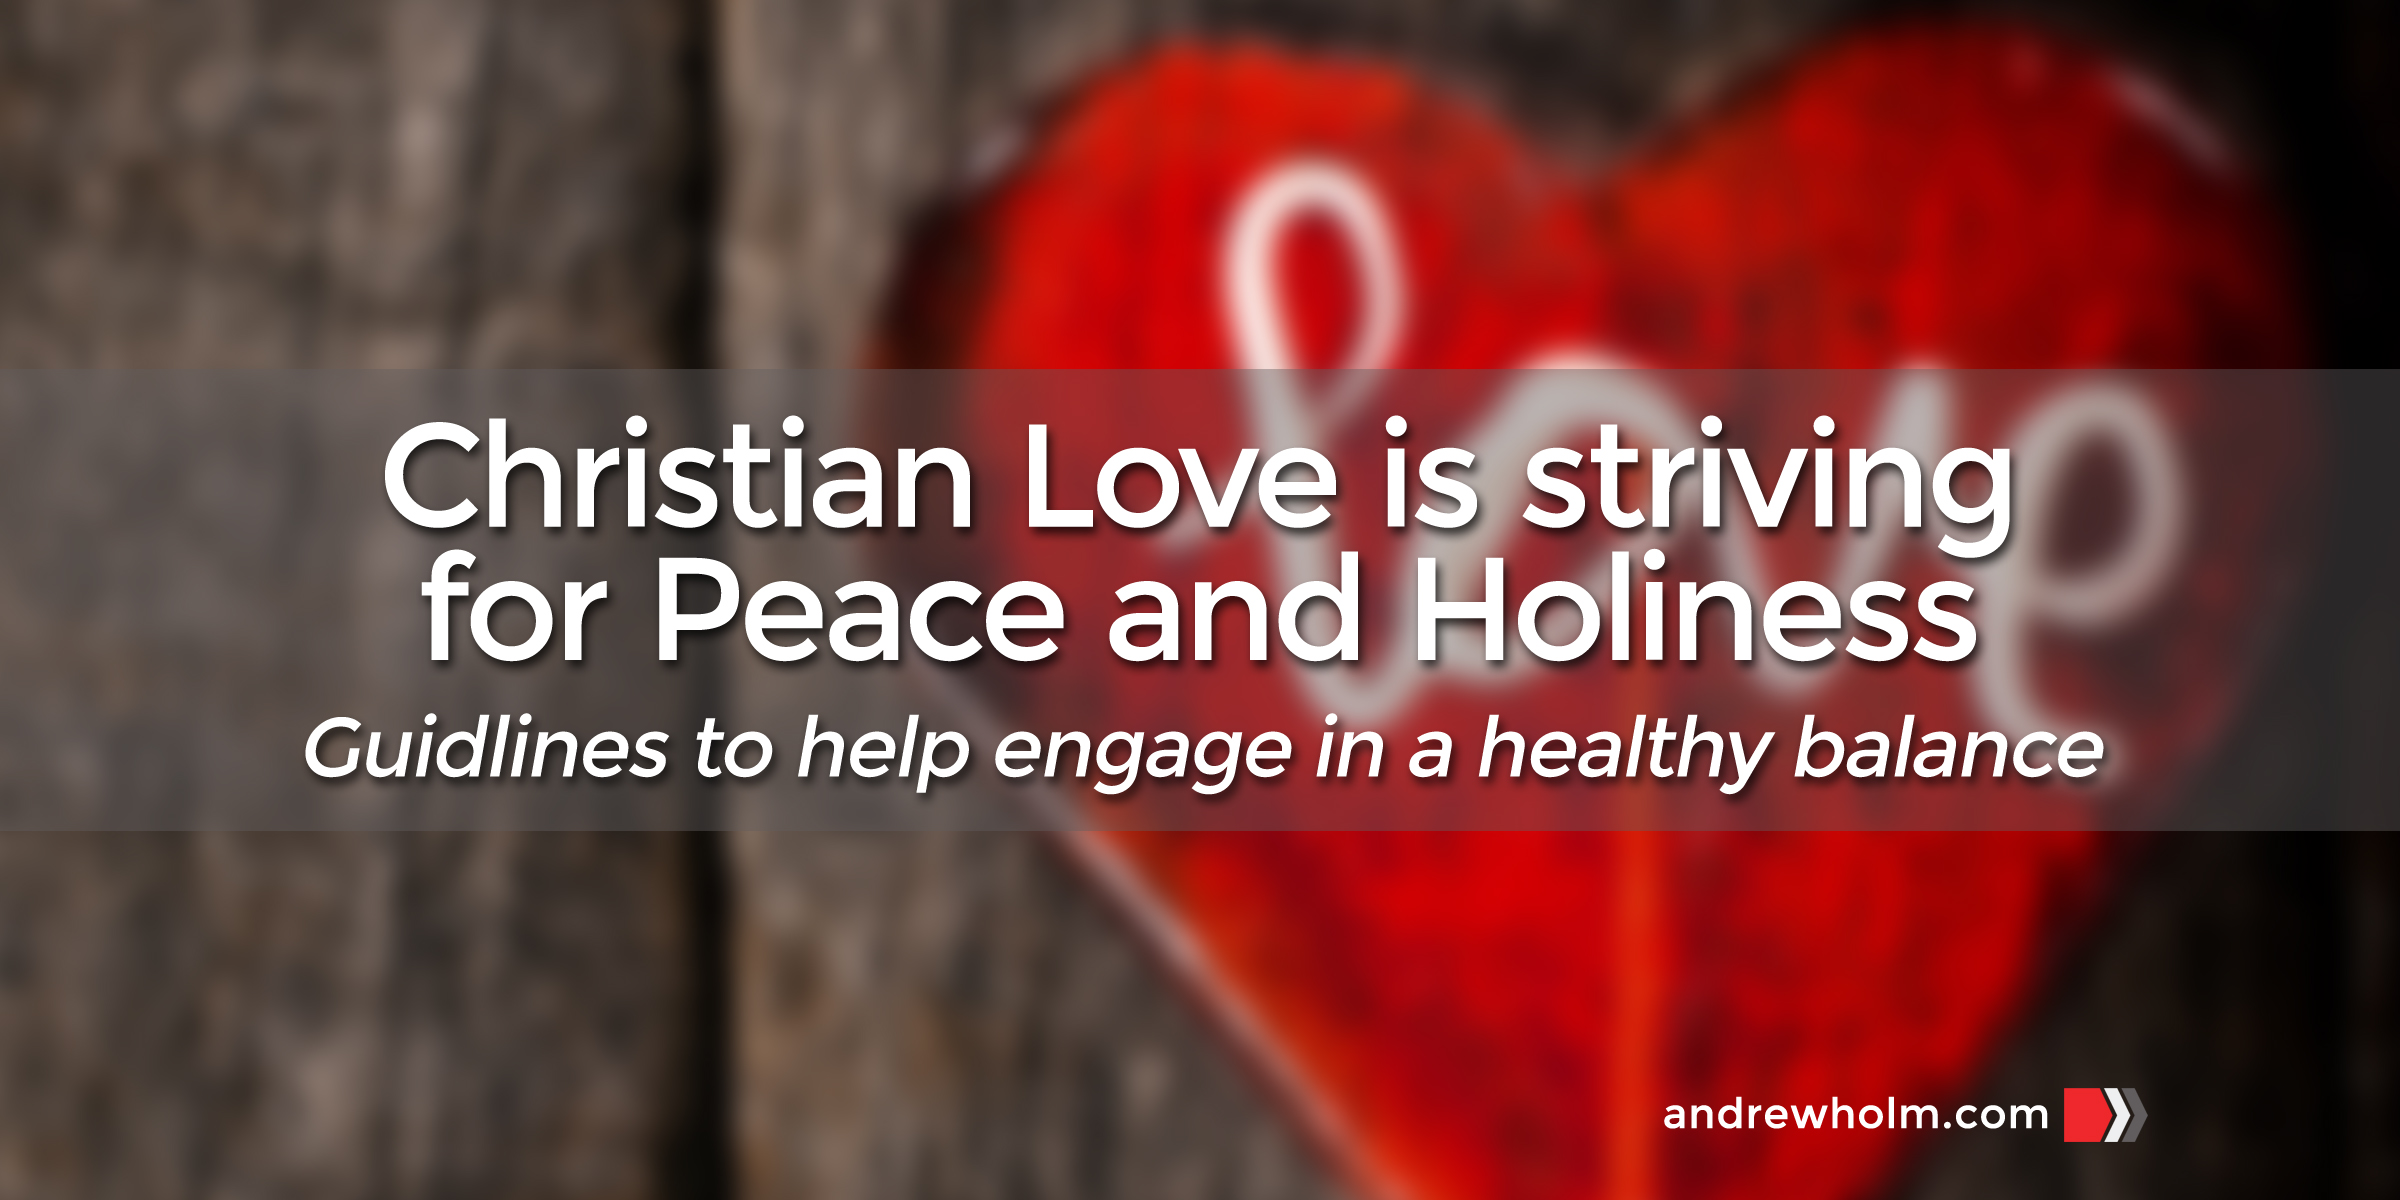 Christian Love is striving for Peace and Holiness